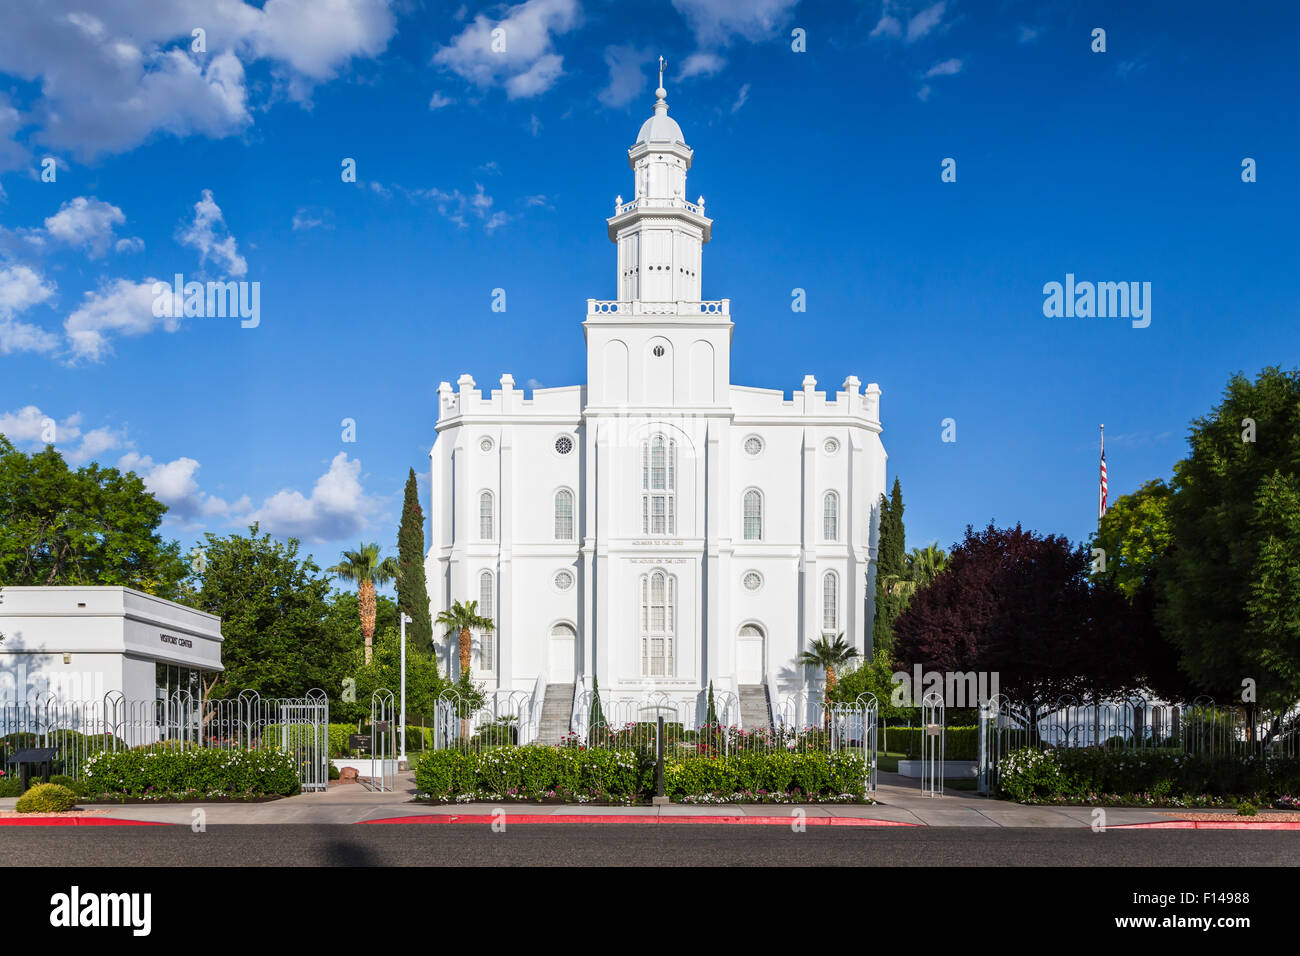 The historic temple of the Church of Later-day Saints in ST. George, Utah, USA. - Stock Image